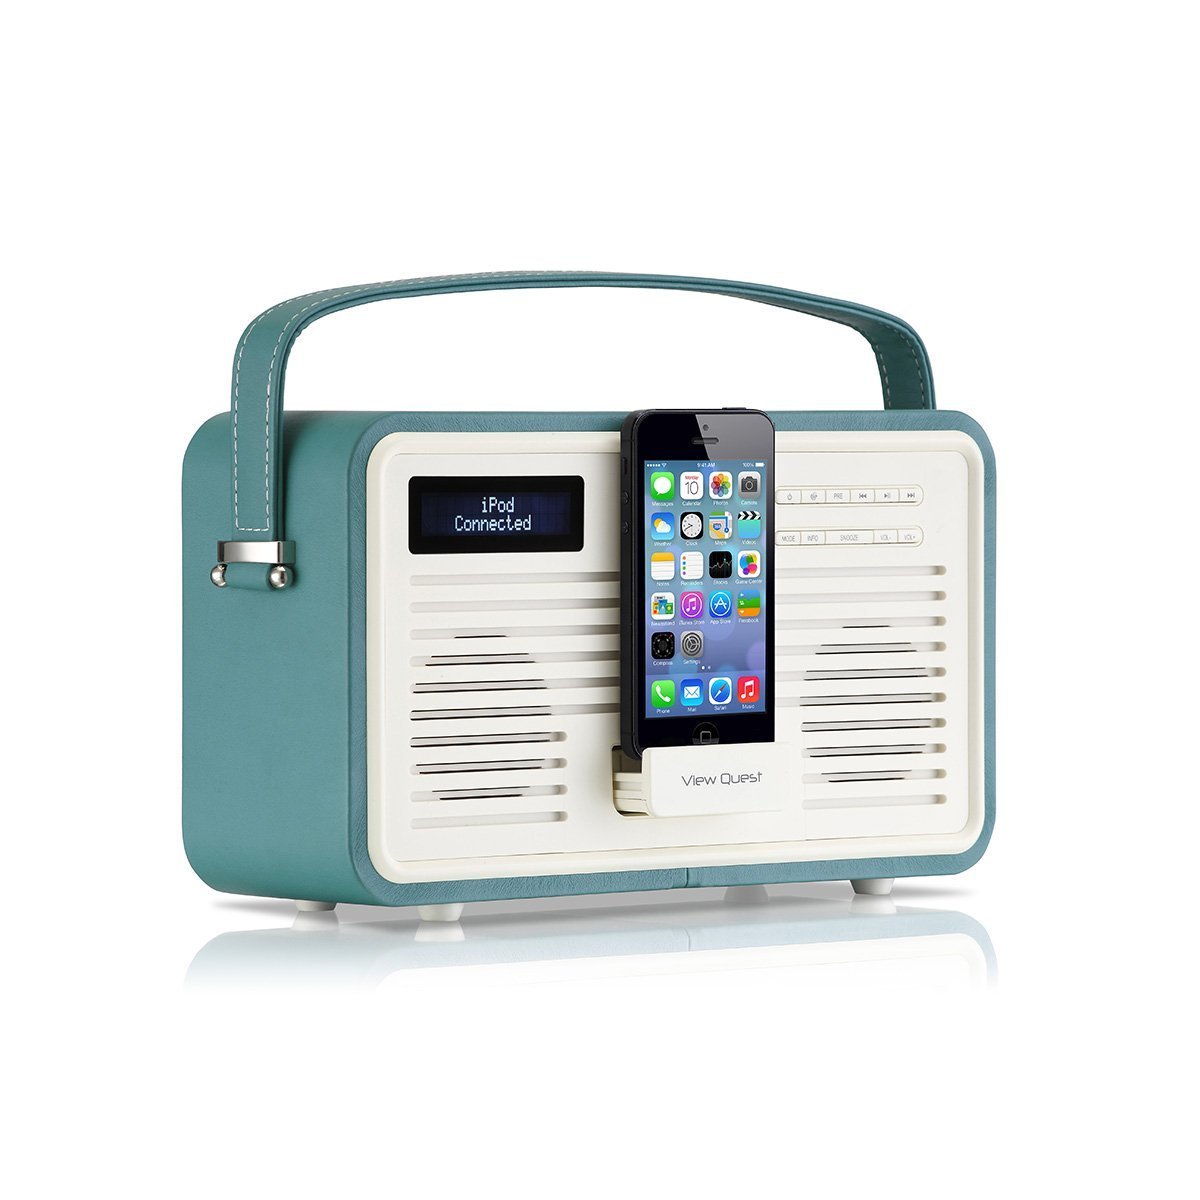 viewquest retro colourgen dab fm radio ipod iphone 5 5c 5s 6 dock station teal ebay. Black Bedroom Furniture Sets. Home Design Ideas